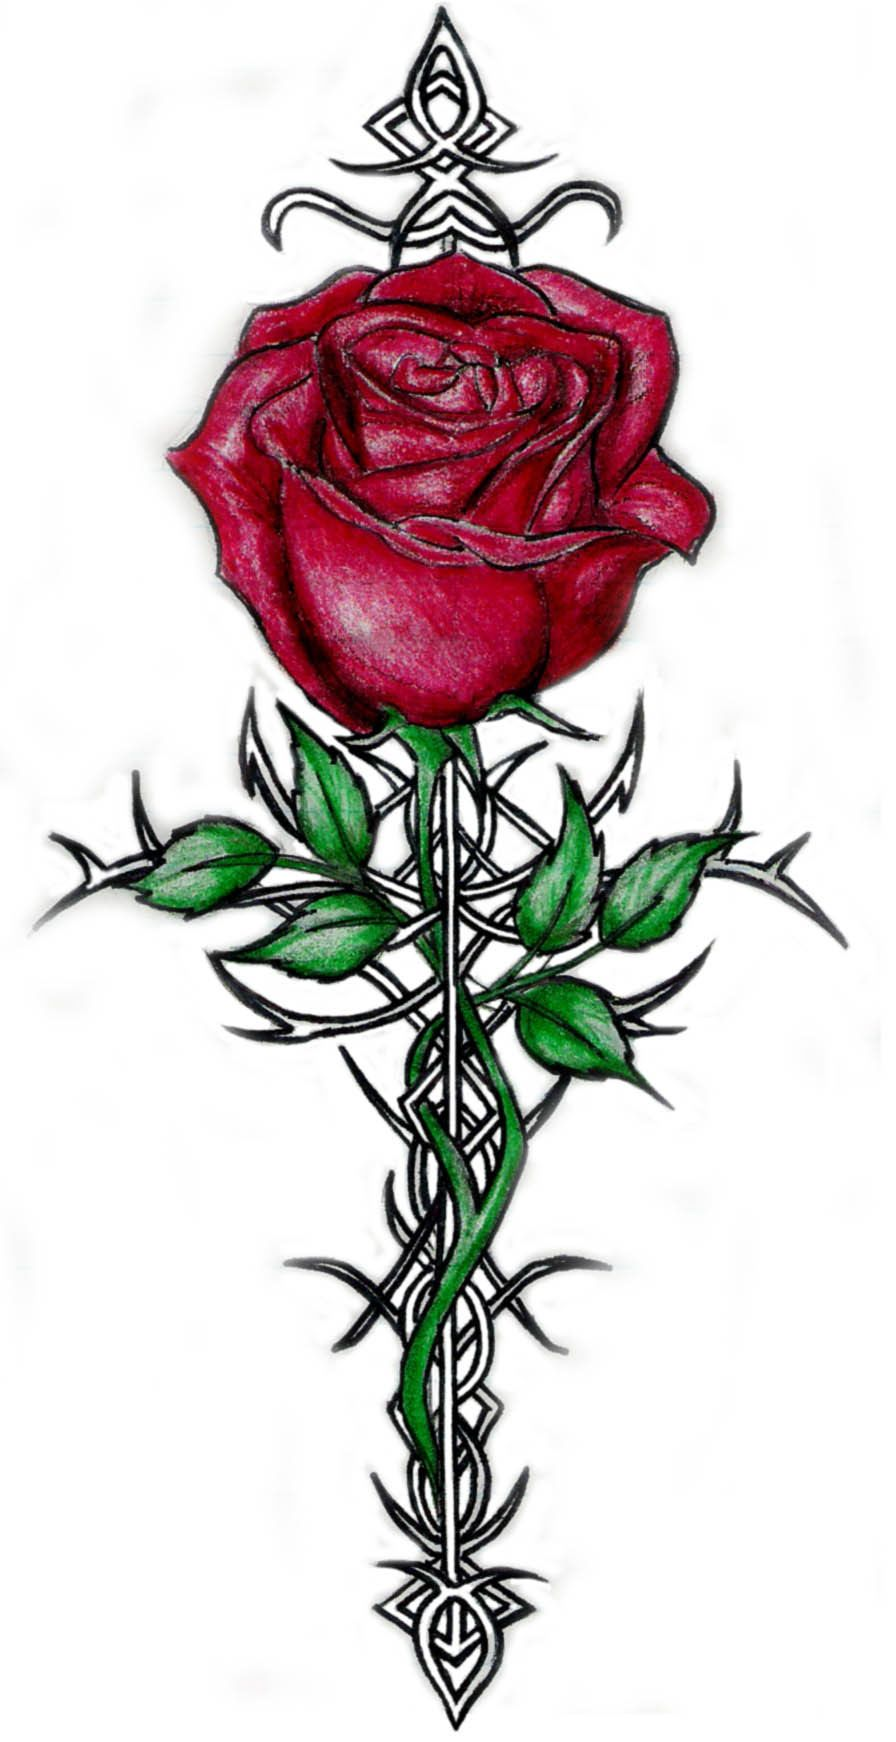 The Real Meaning Of A Rose Tattoo - TheList.com